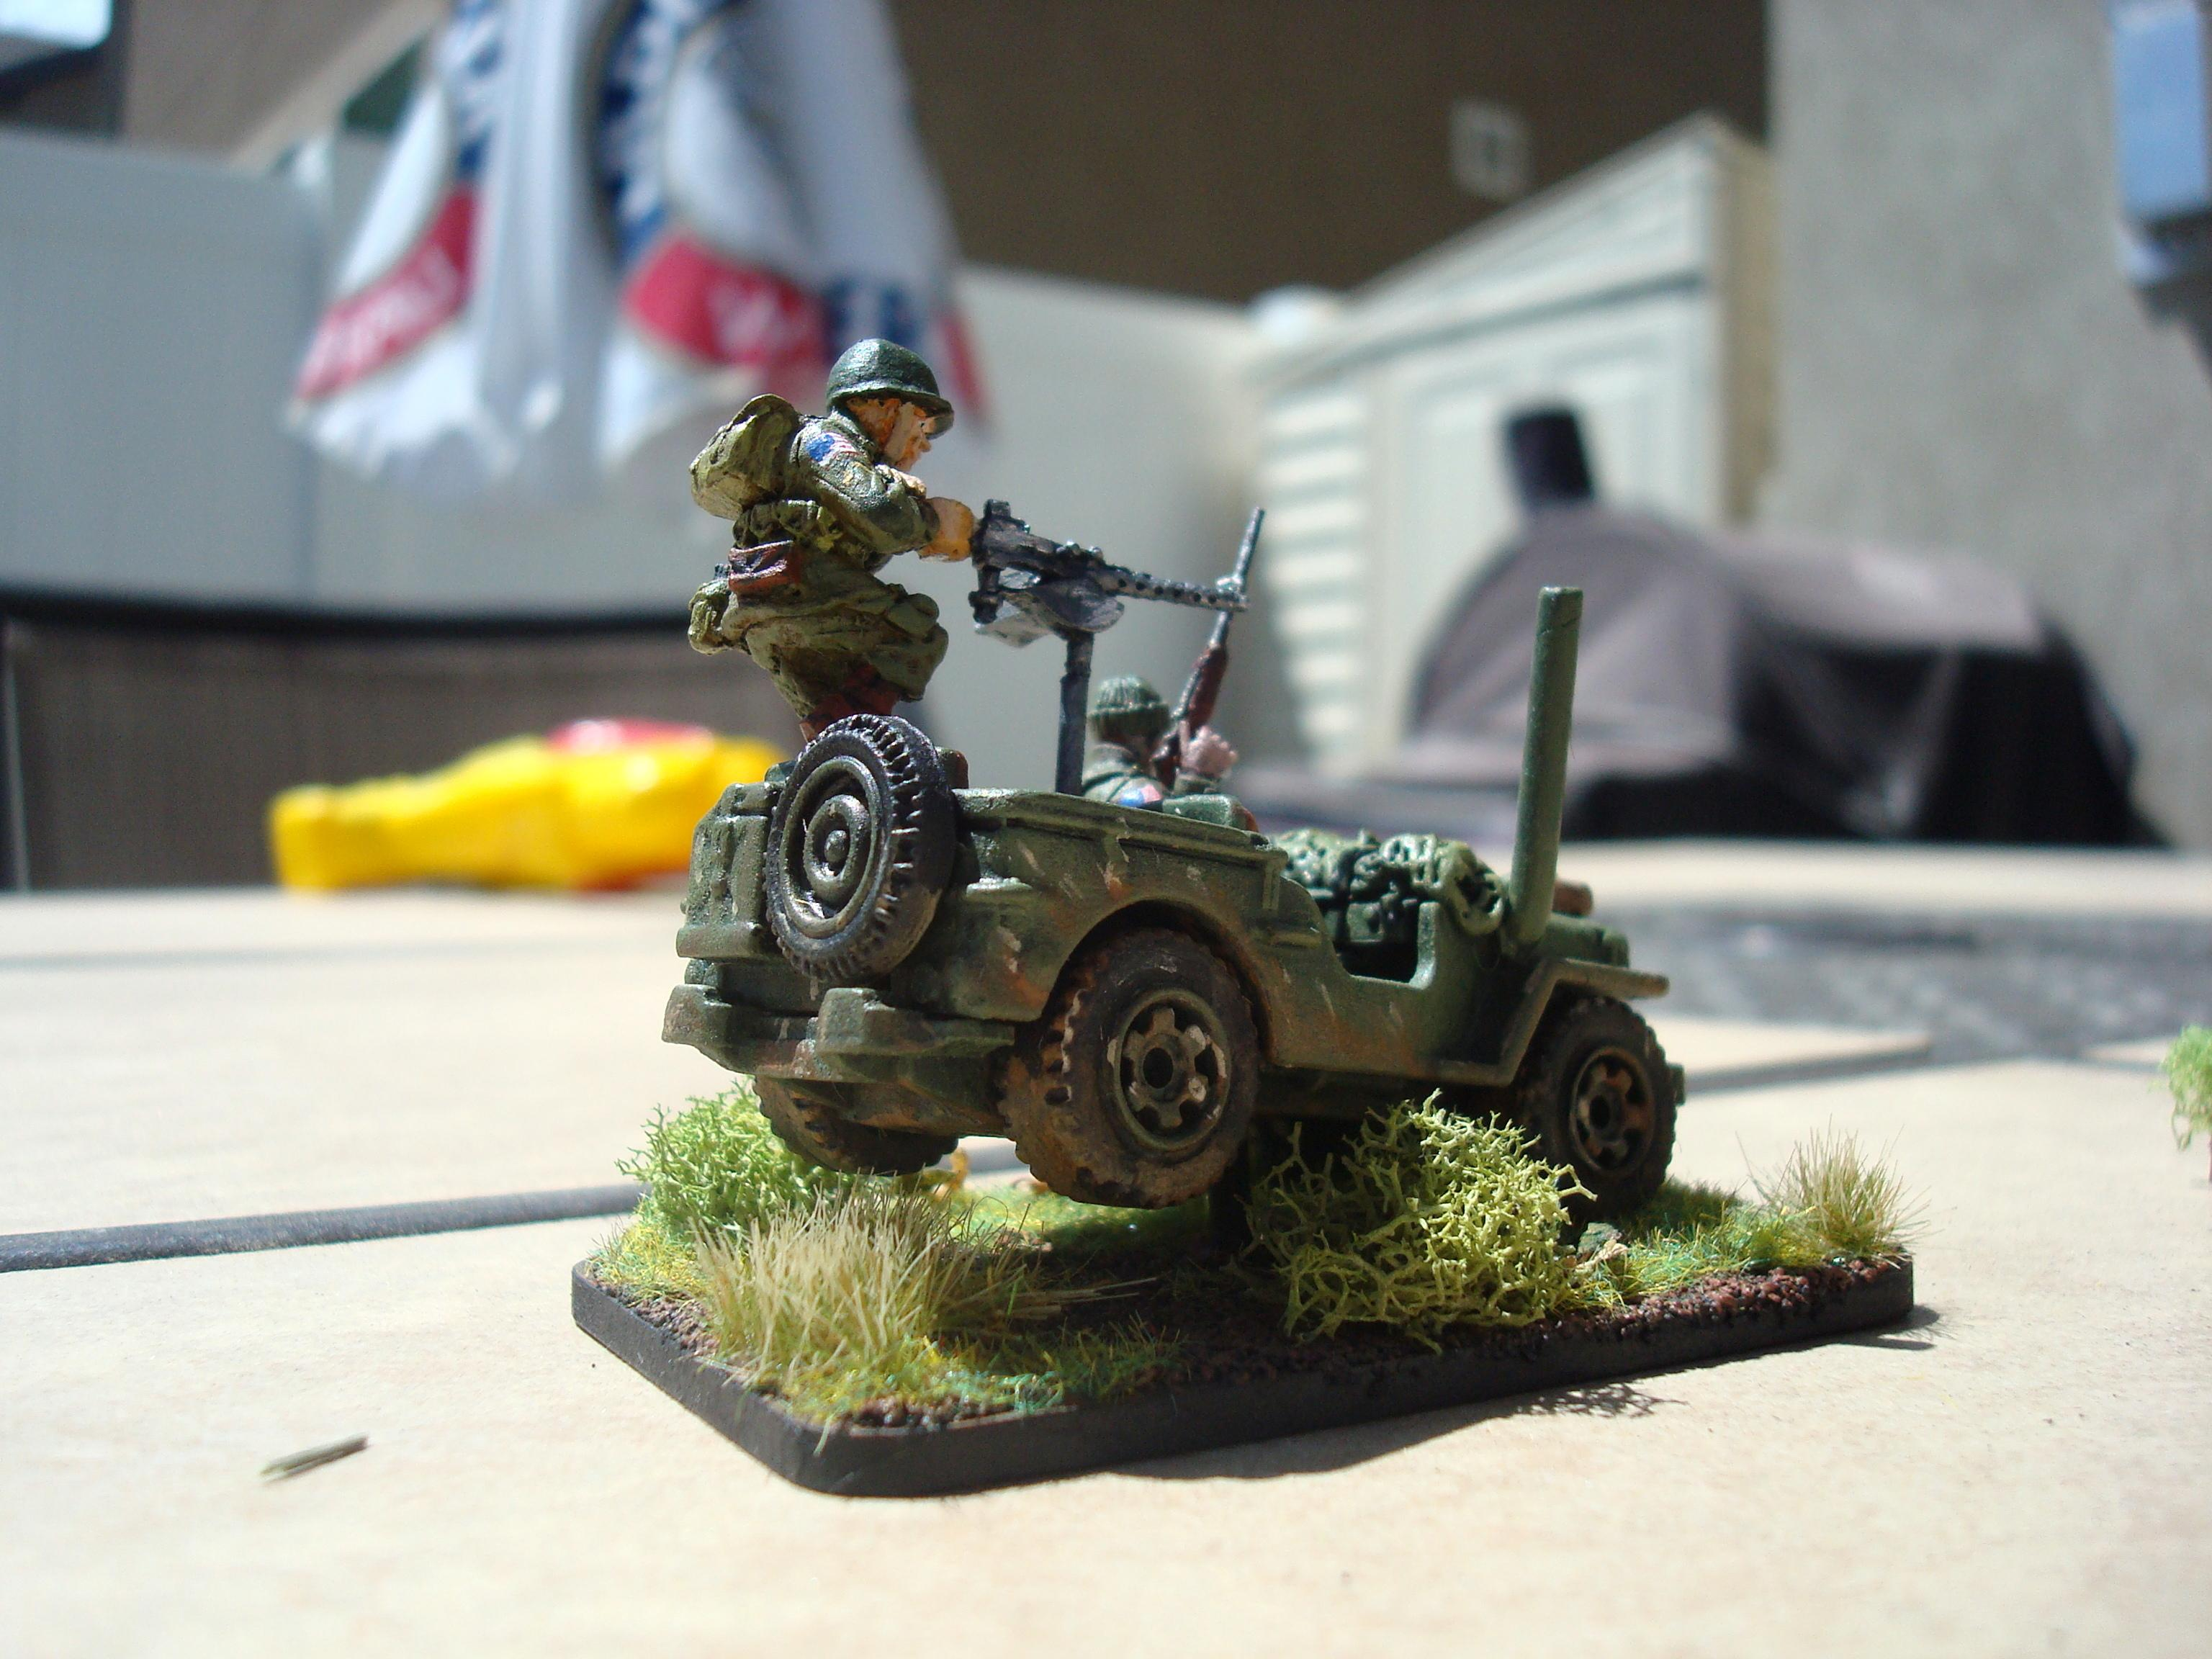 Airborne, Bolt Action, Hmg, Jeep, Paratrooper, Willys